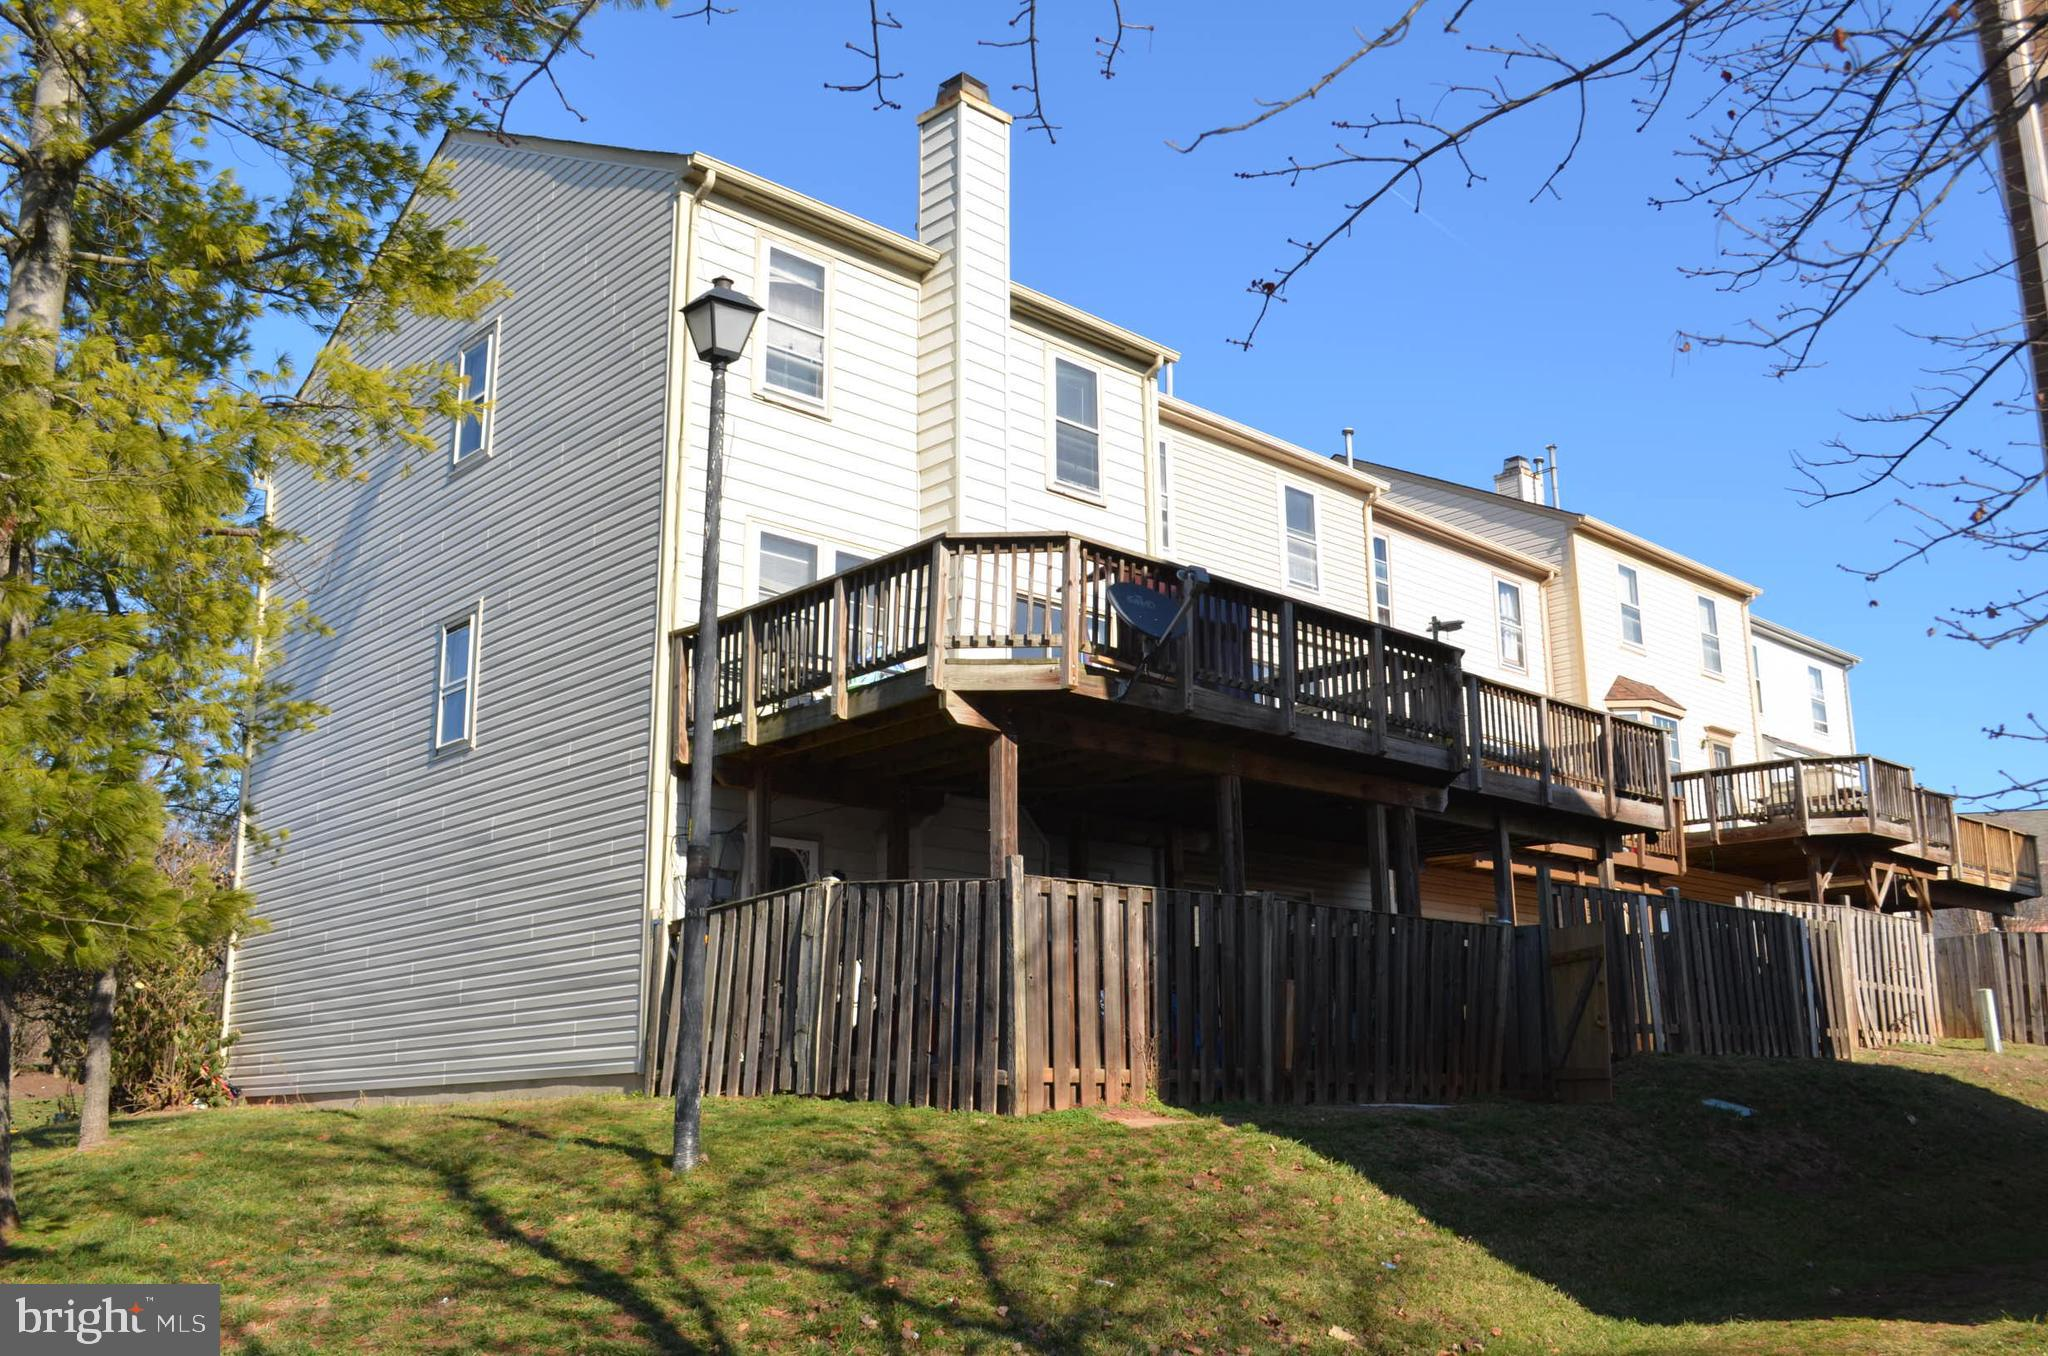 Lovely 3 Level End Unit Townhome W/Deck in Sought after Ballsford. Quiet Neighborhood. Conveniently